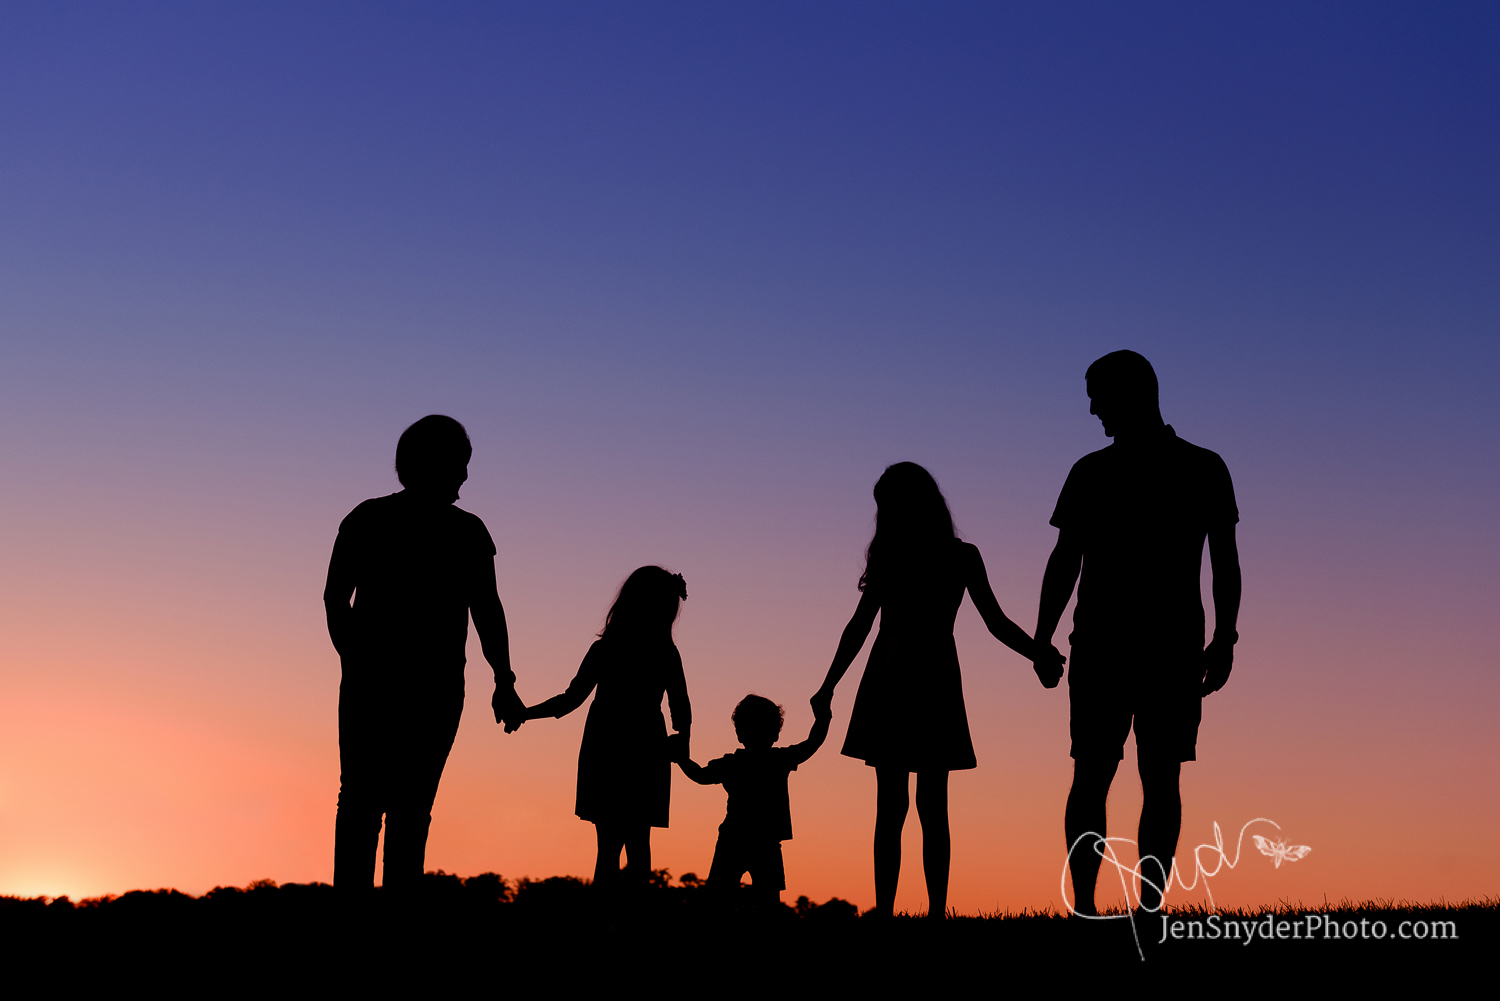 Harford county maryland family photographer, summer sunset silhouette http://www.jensnyderphoto.com